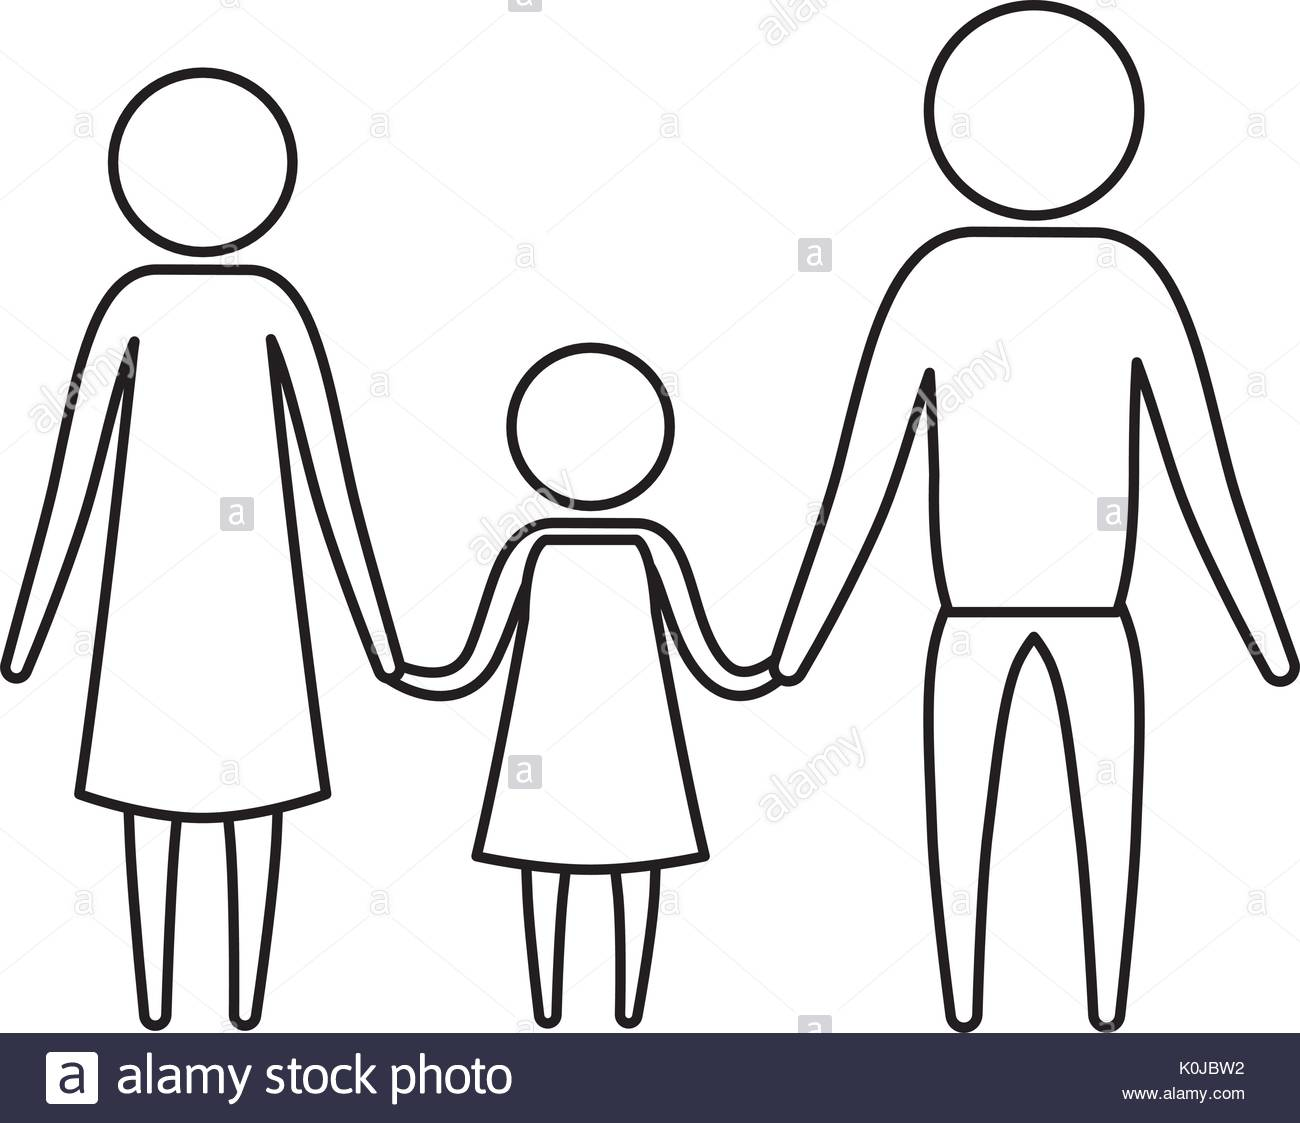 1300x1123 Sketch Silhouette Of Pictogram Parents With A Girl Holding Hands